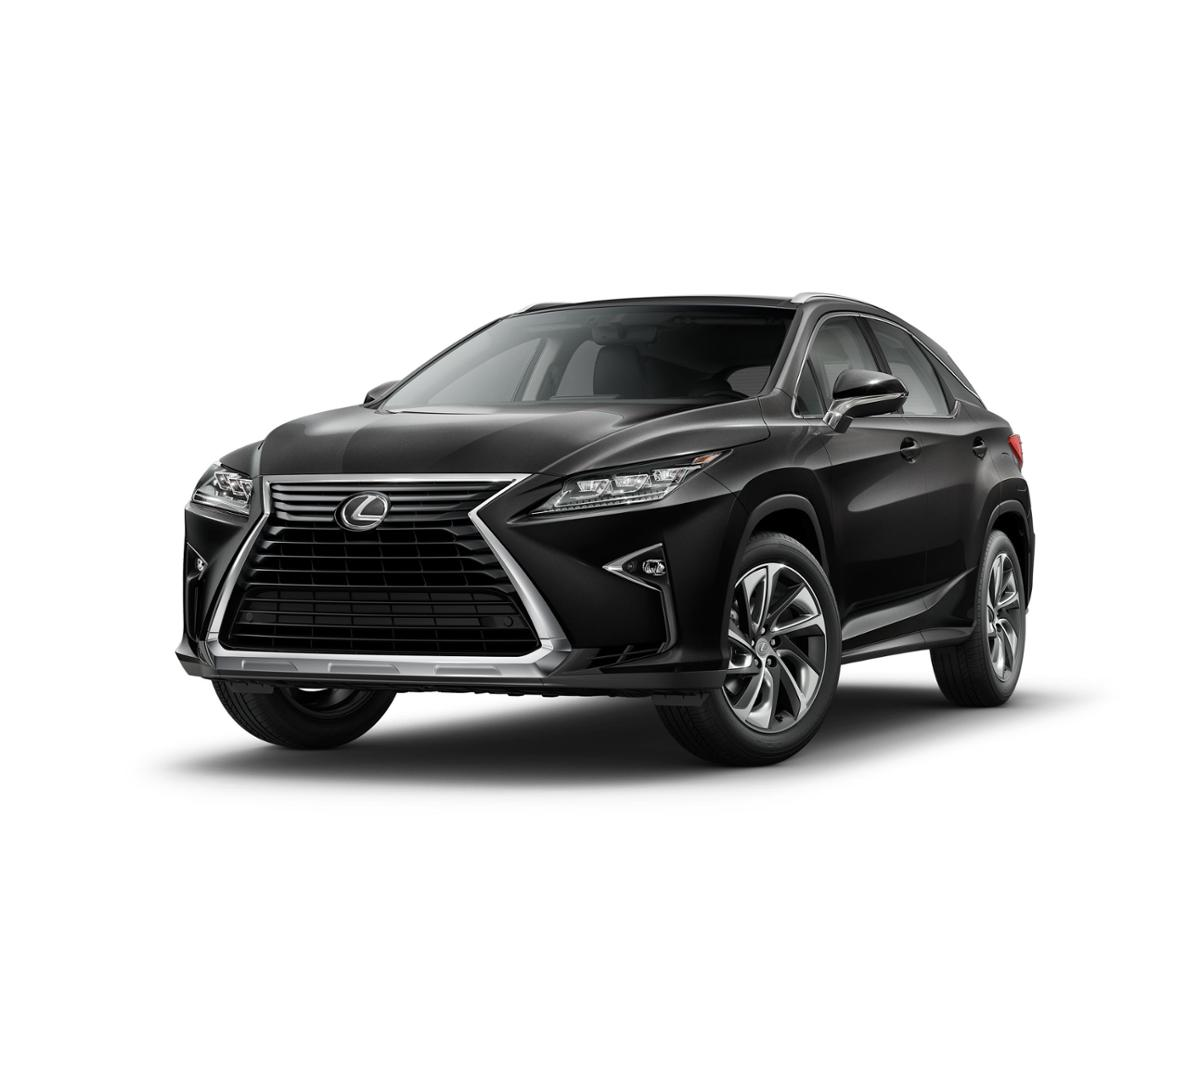 hight resolution of 2019 lexus rx 350 vehicle photo in freehold nj 07728